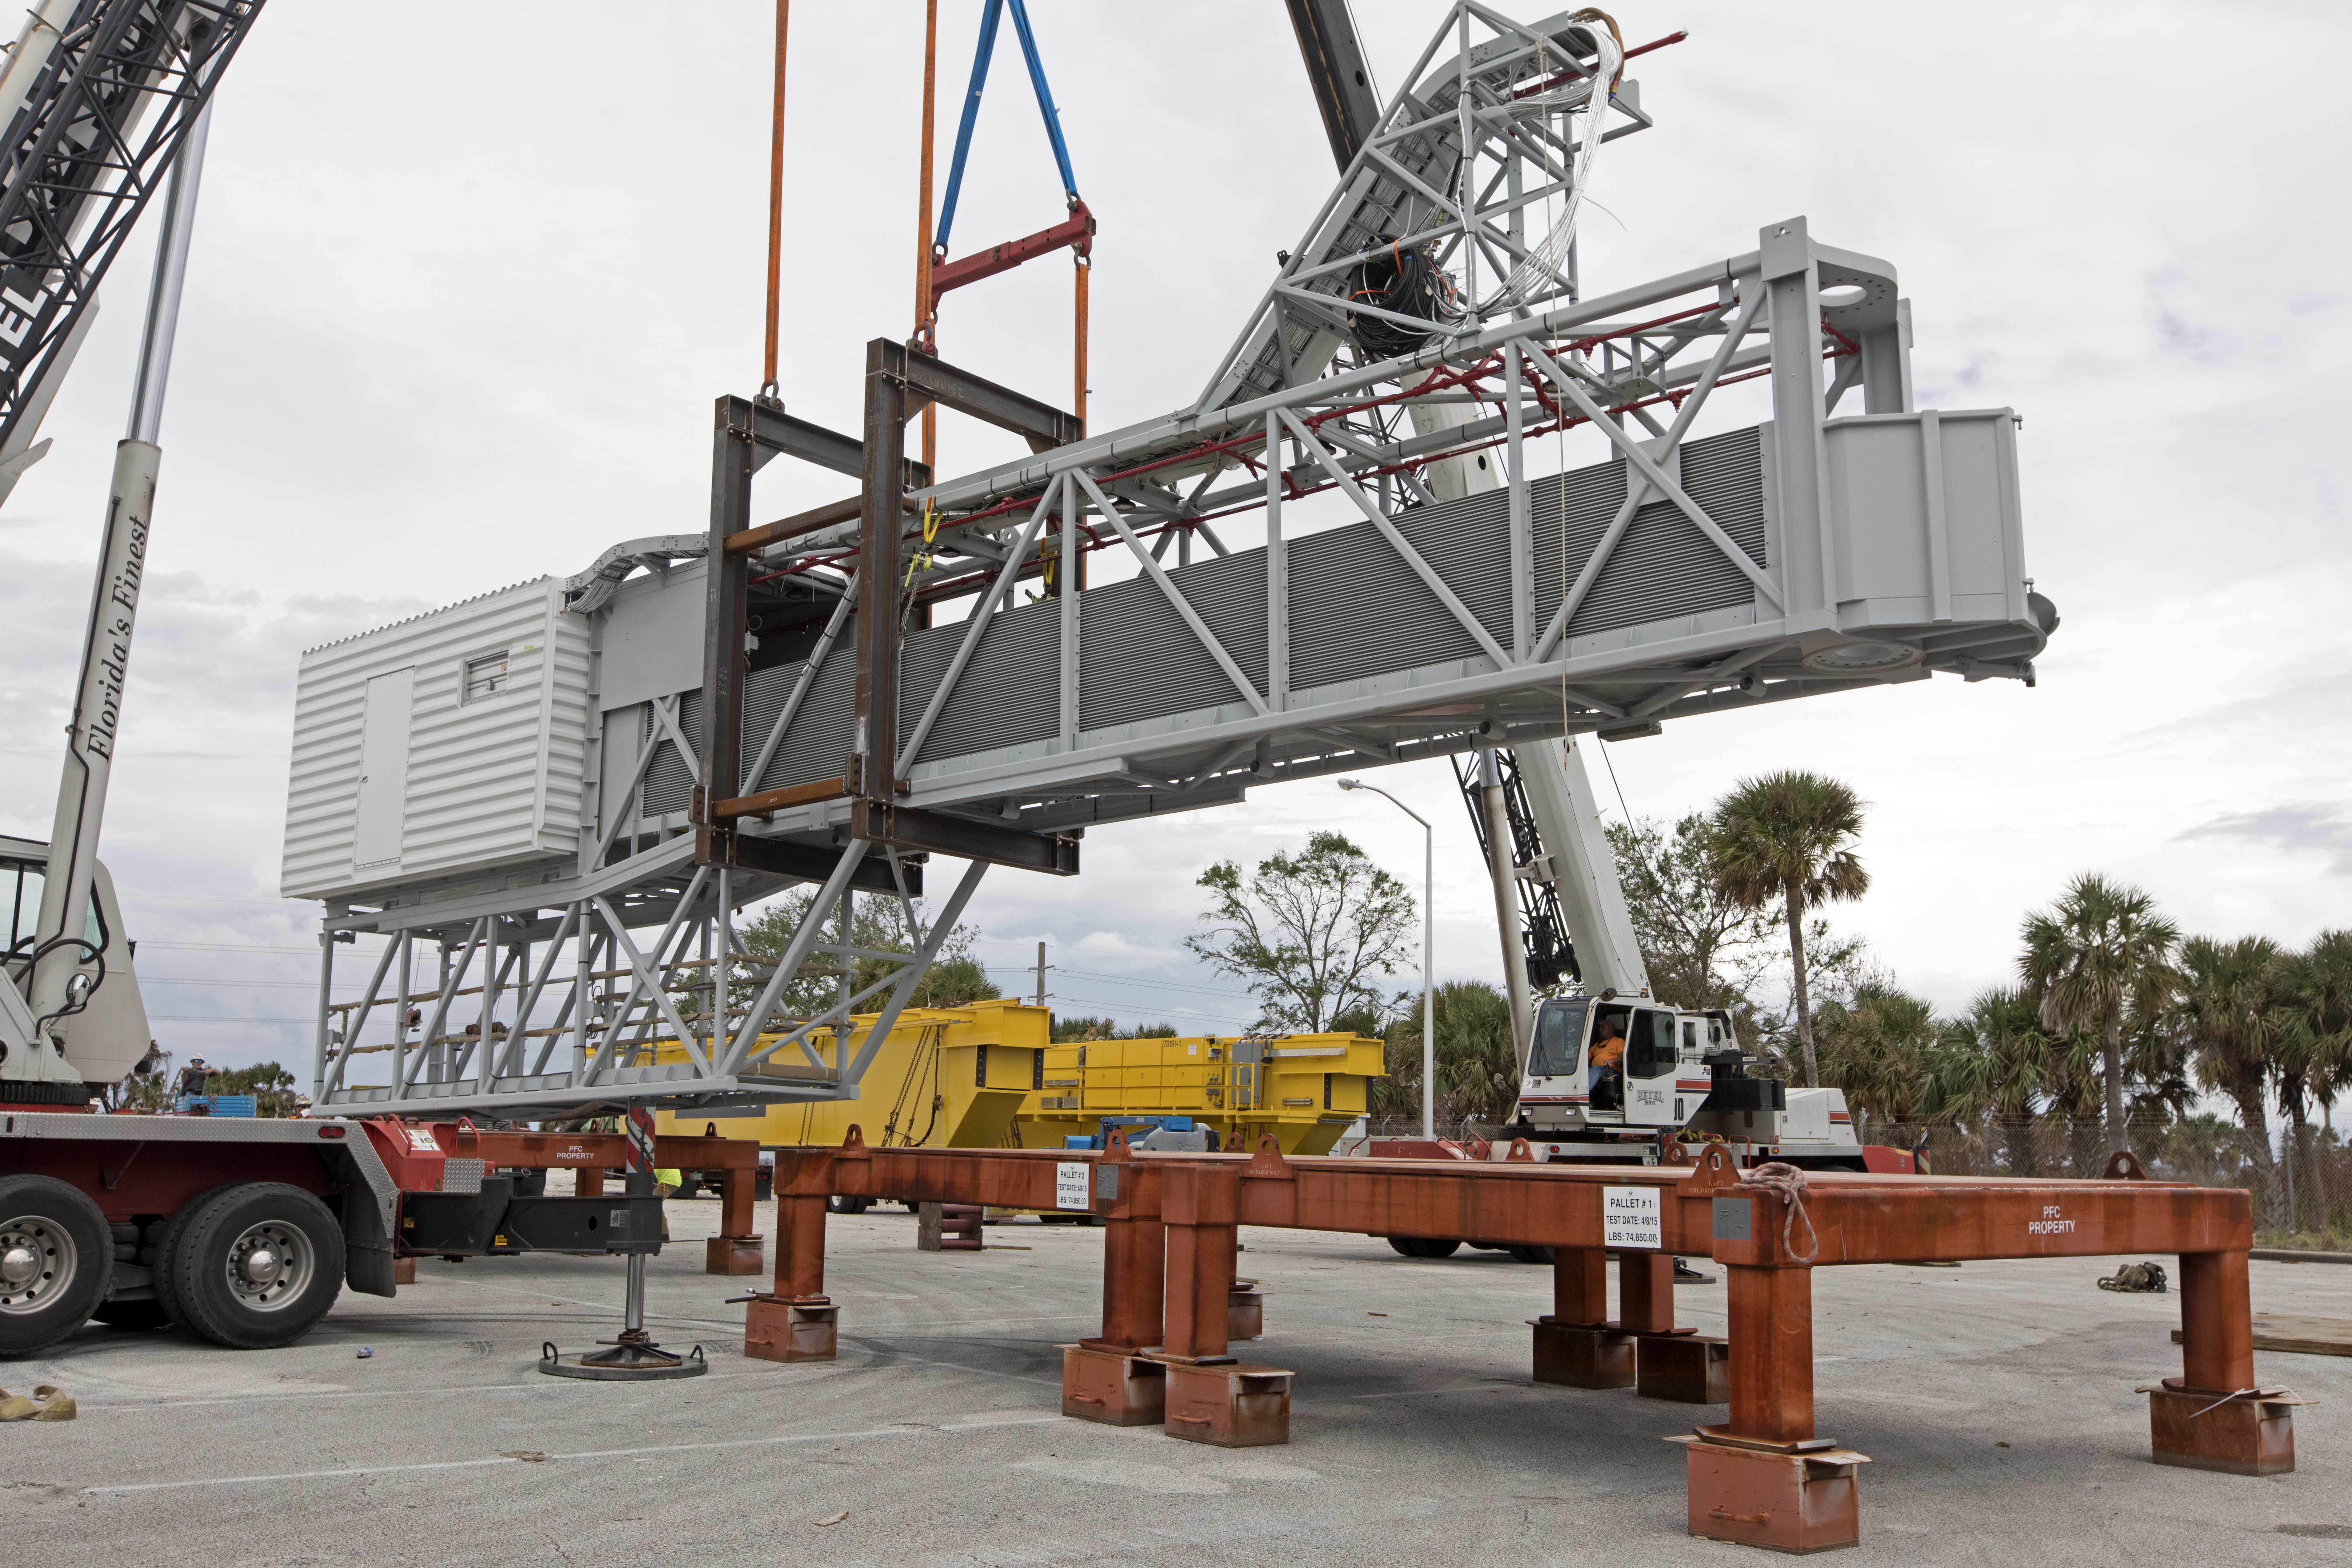 mobile launcher crew access arm transport from cocoa fl to ksc